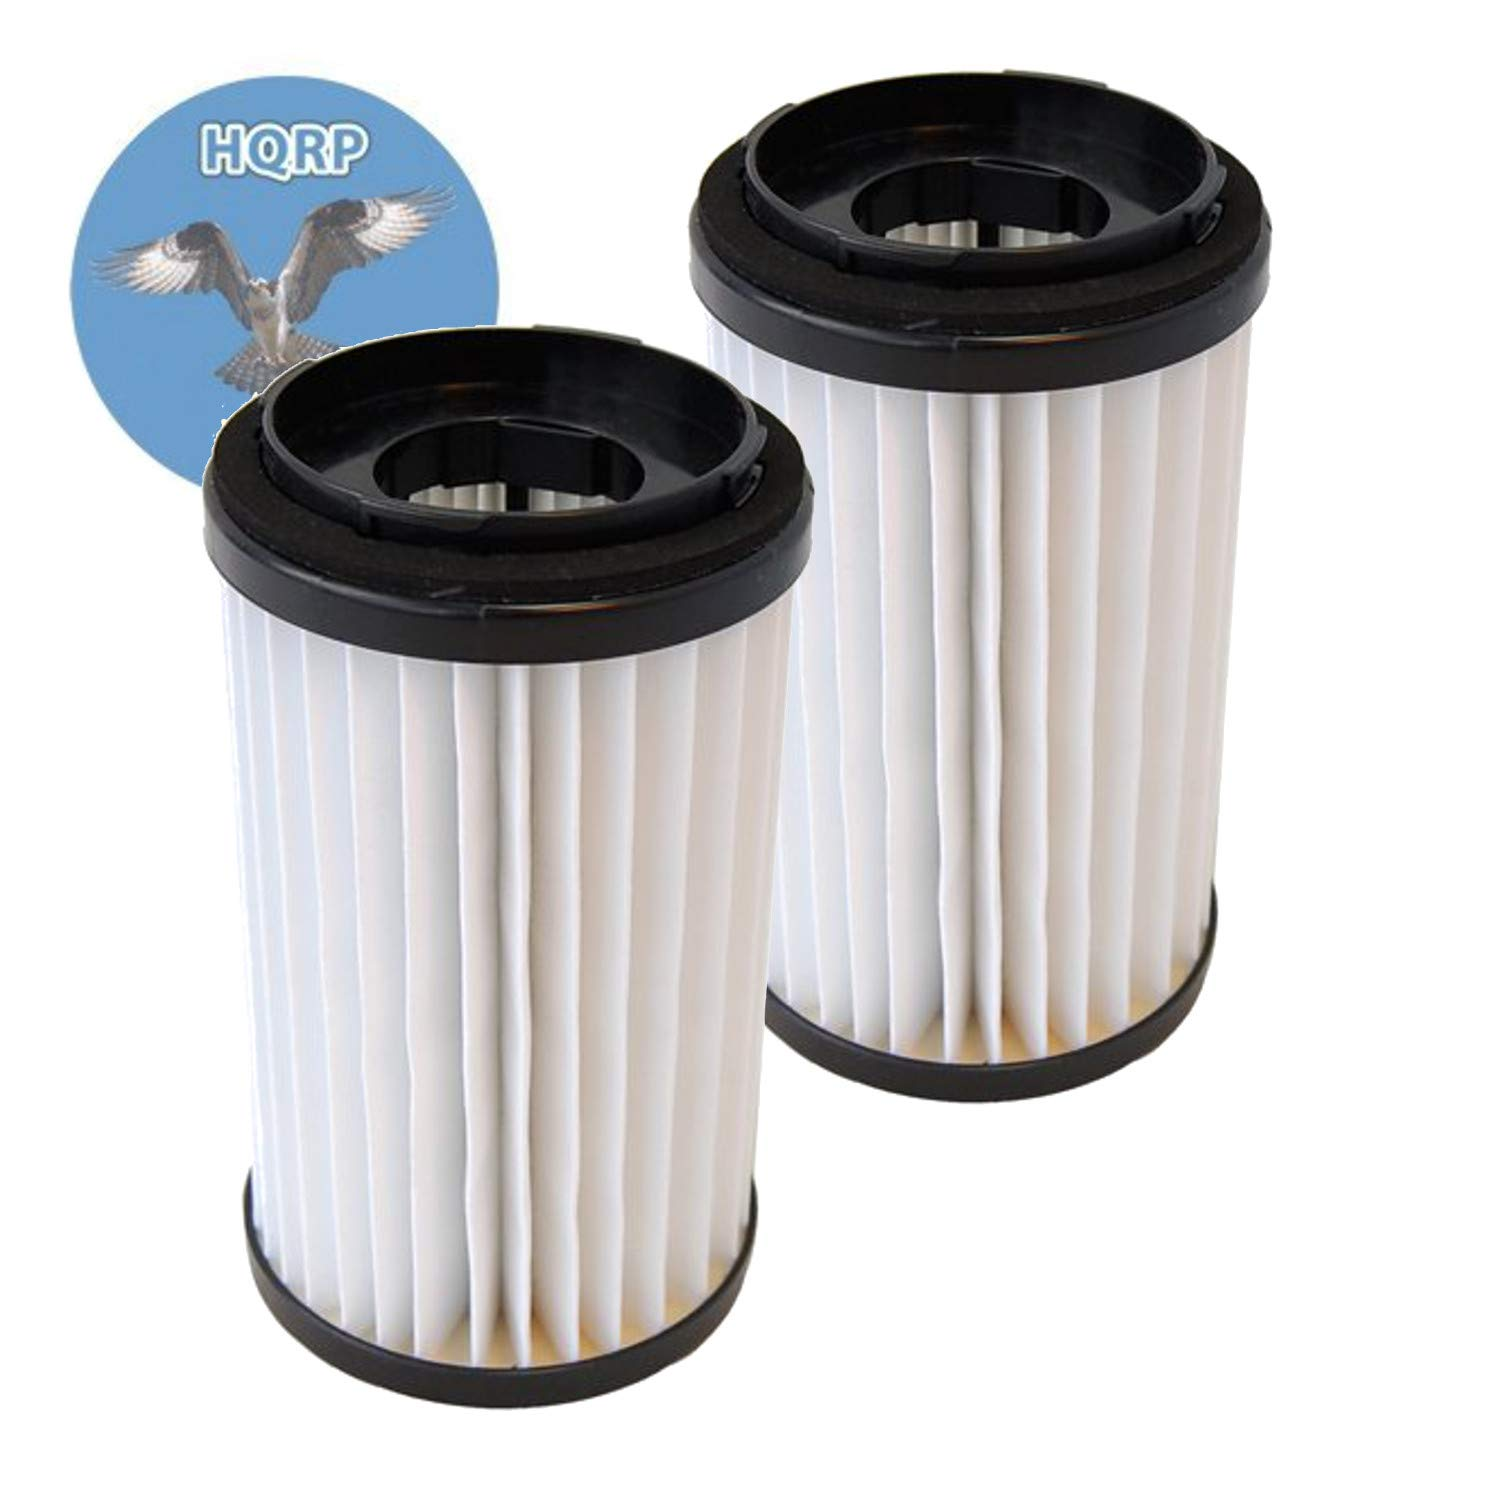 HQRP 2-Pack Washable HEPA Filters Compatible with Sears/Kenmore/Panasonic 82720, 82912, 20-82912, 20-82720, 0208272000, 02082720000 Replacement Coaster